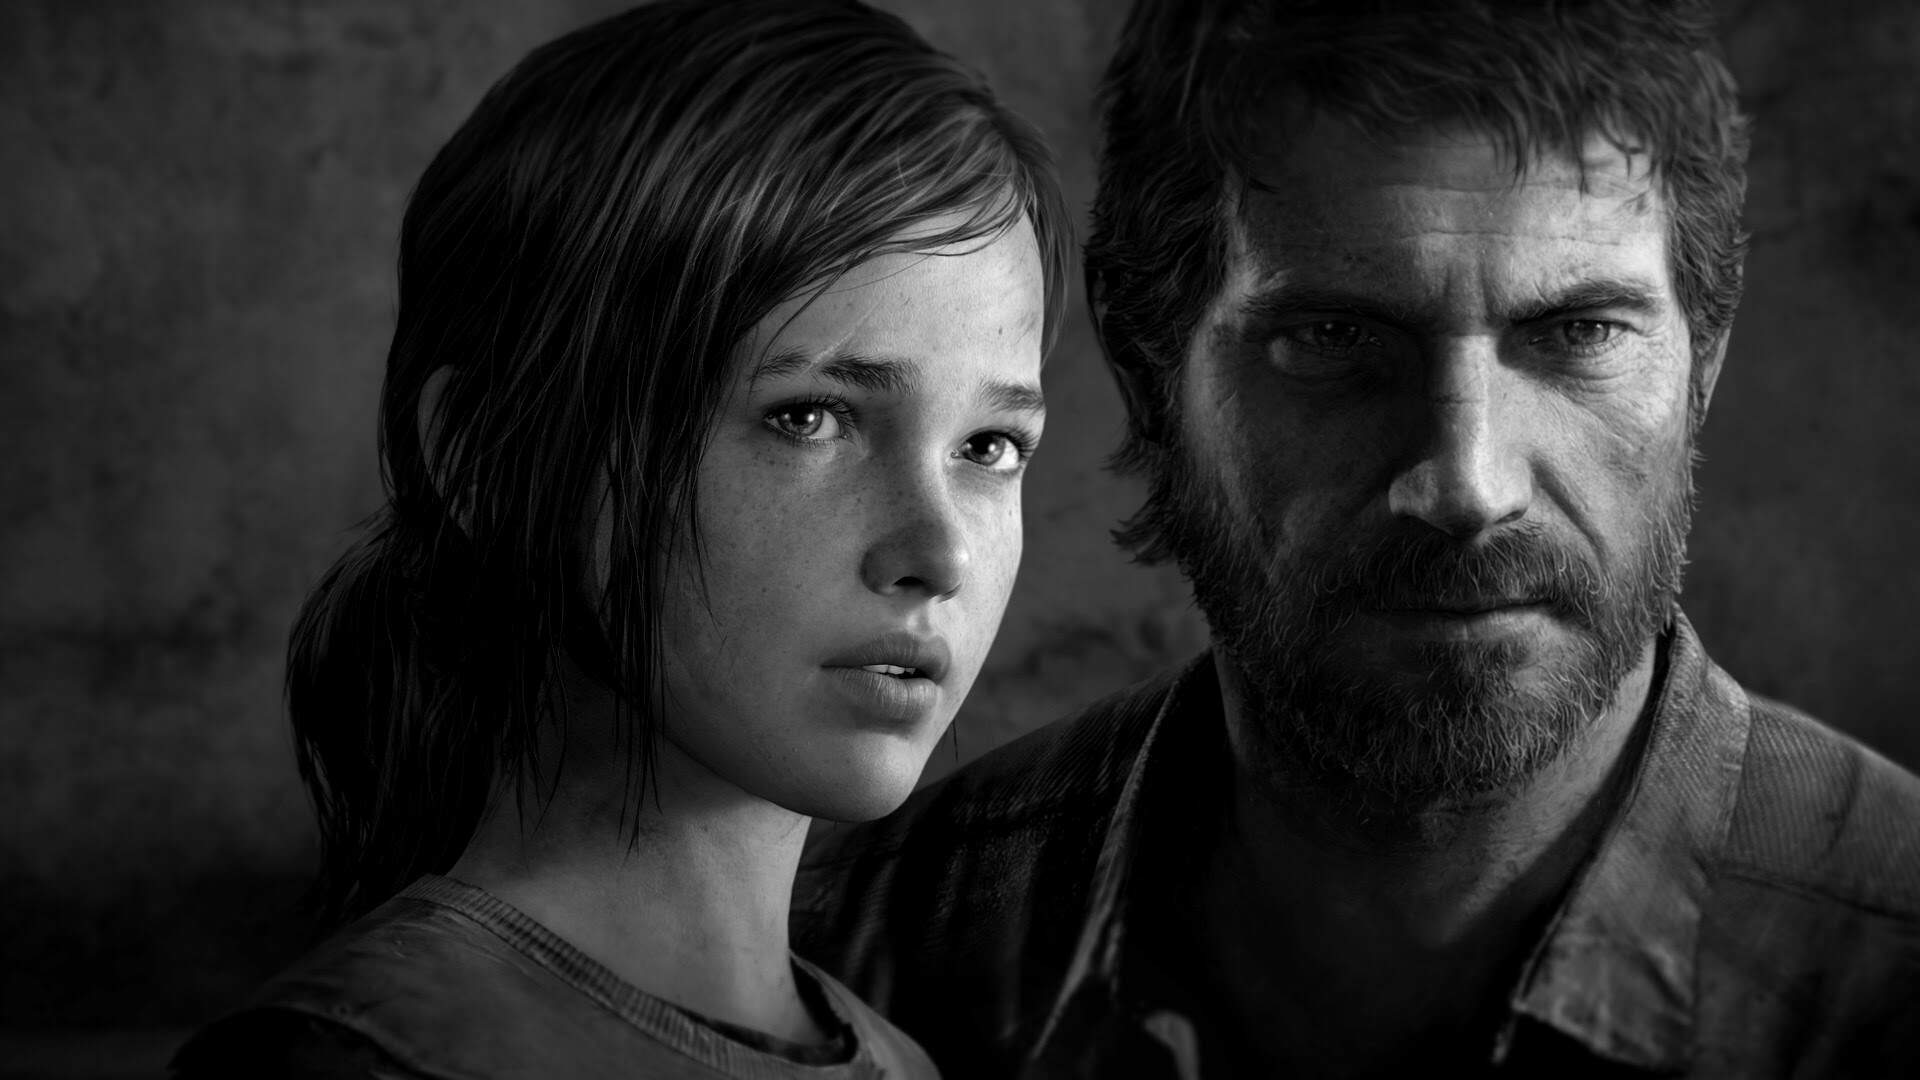 The Last of Us Voted Best Game of the Decade in New Fan Polls